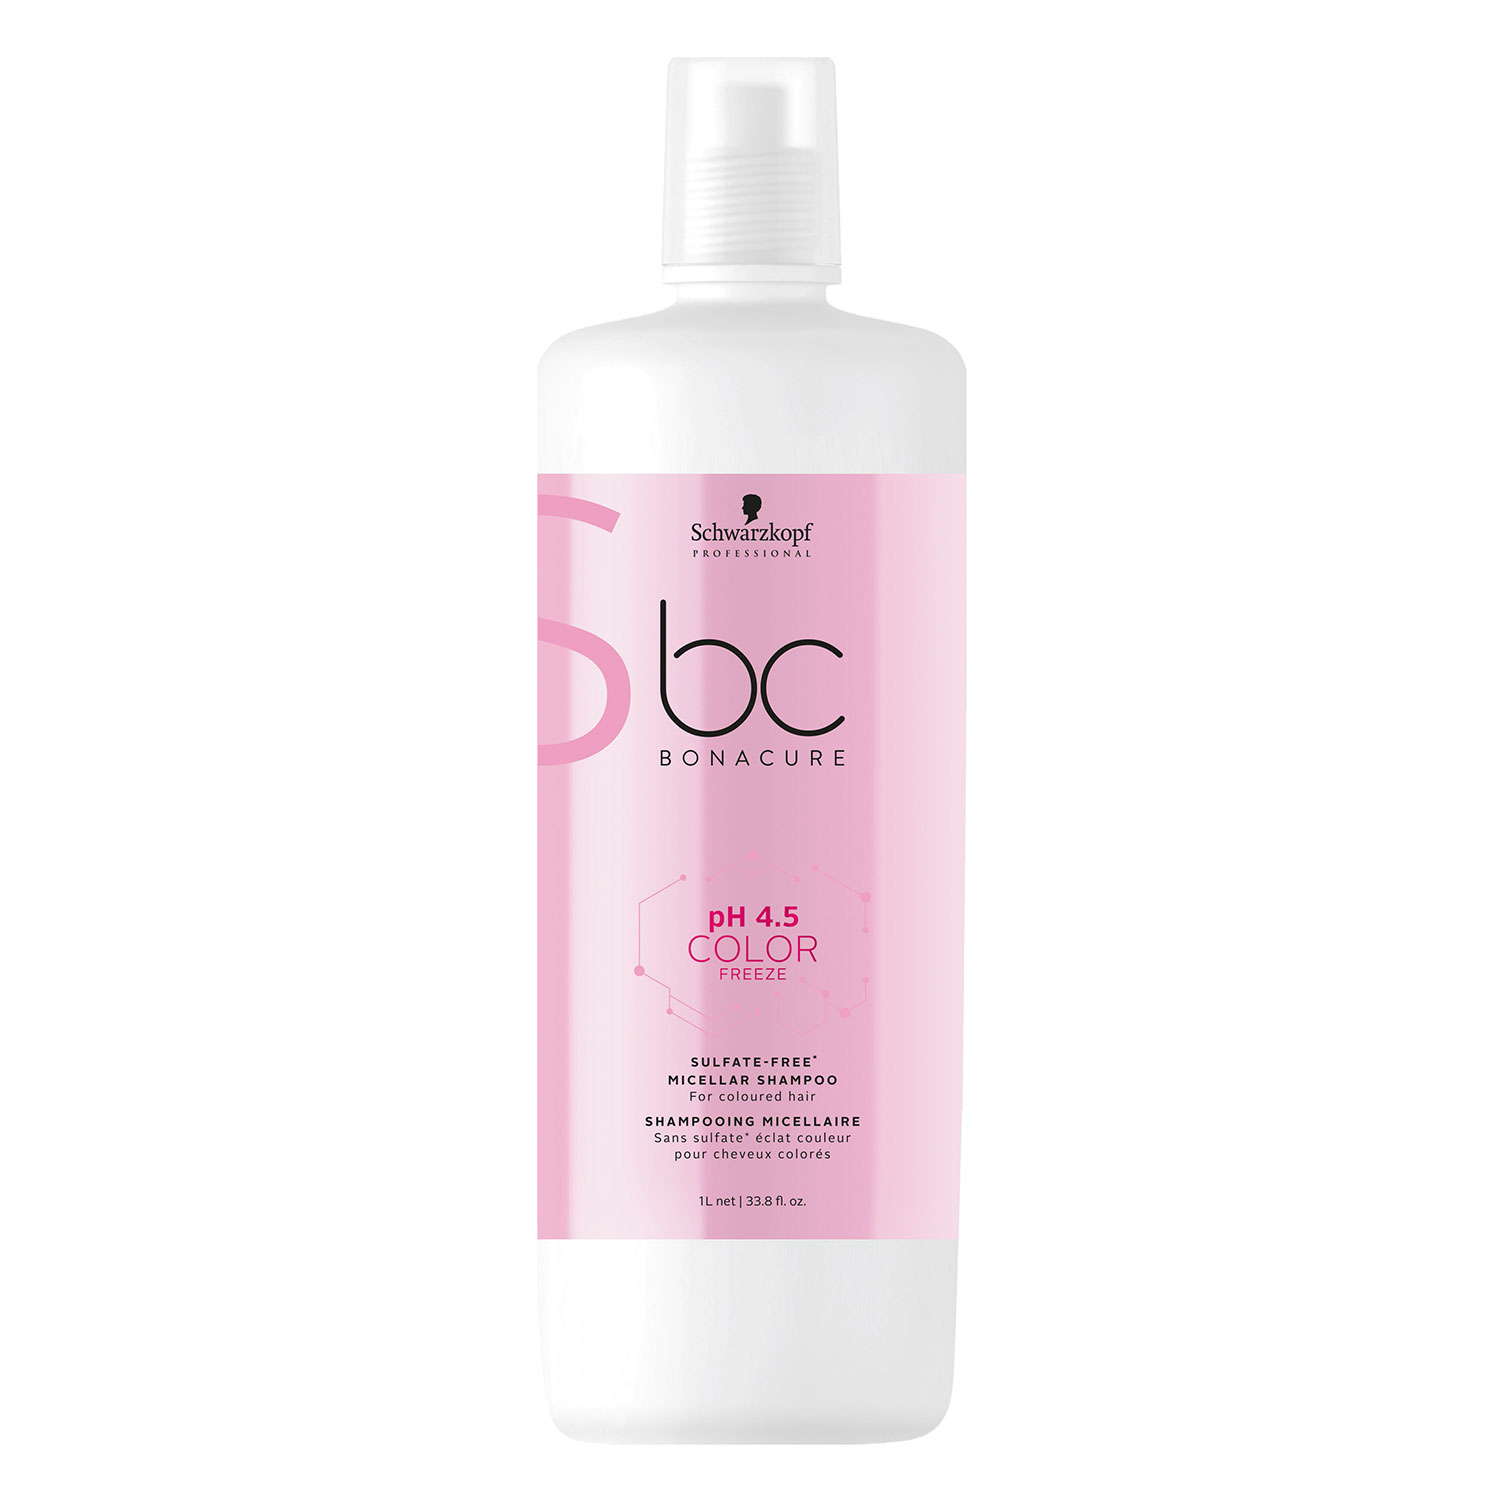 BC pH 4.5 Color Freeze - Sulfate-Free Micellar Shampoo - 250ml